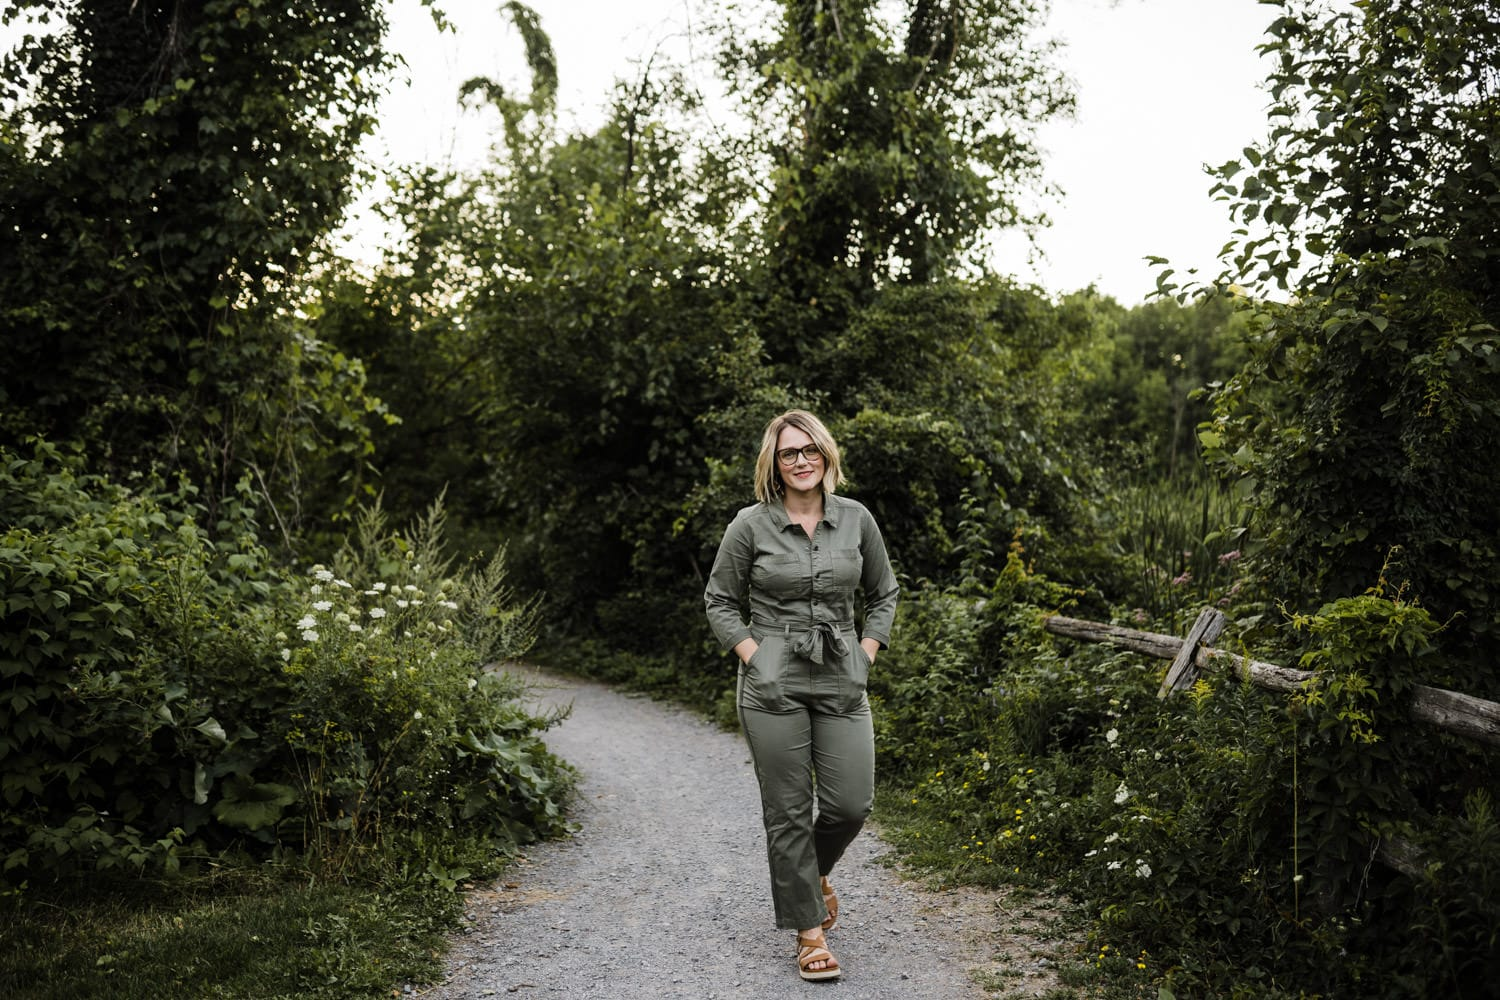 woman walks along forested pathway